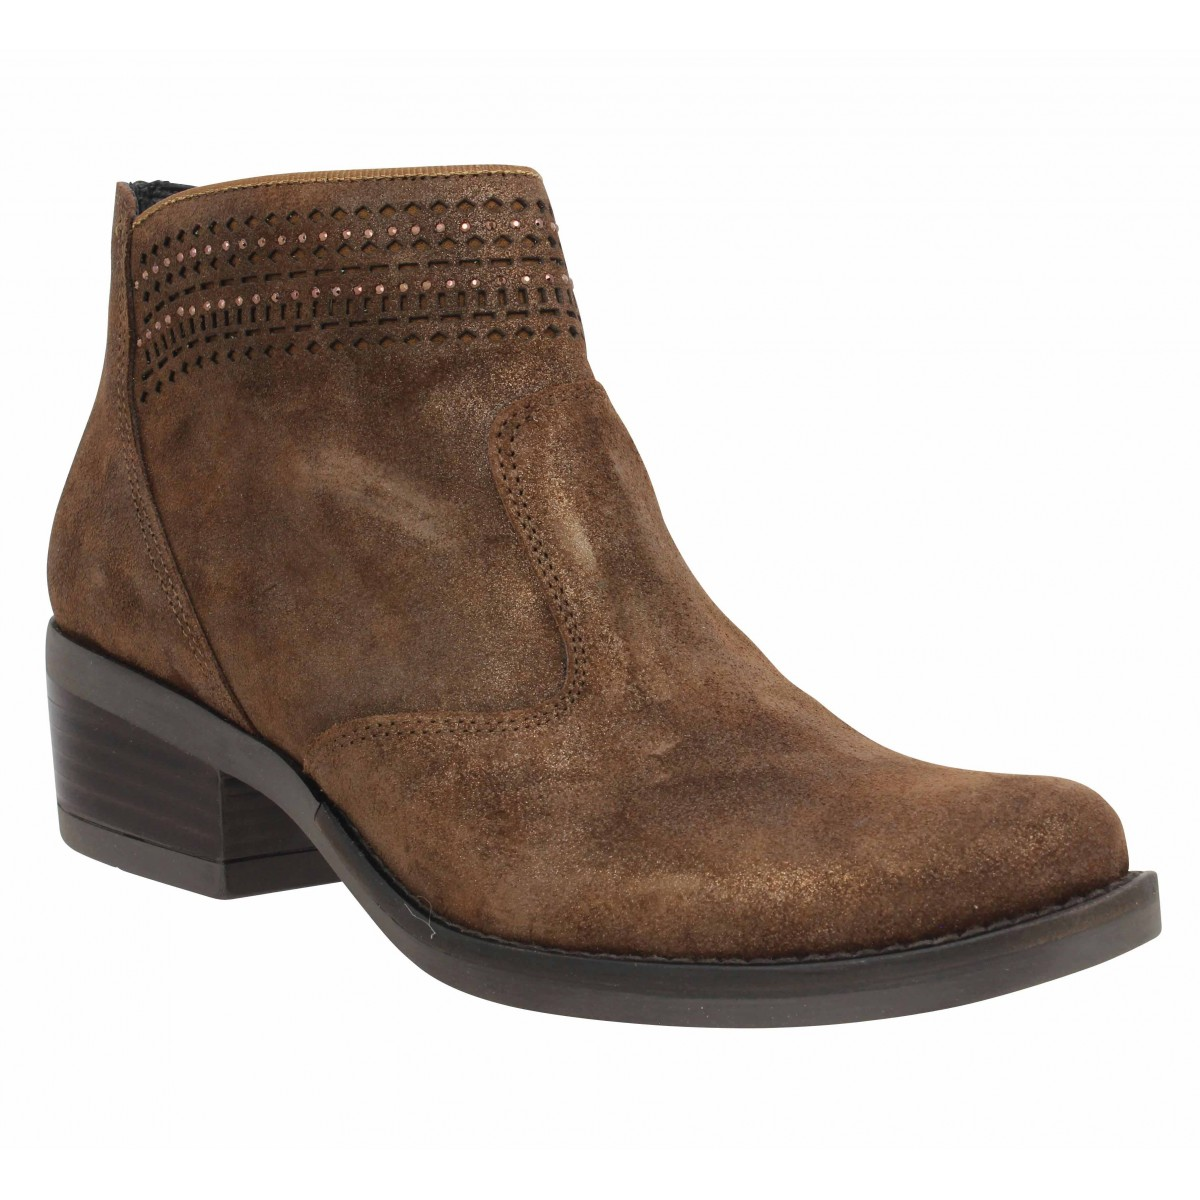 Bottines KANNA 9911 velours Femme Marron